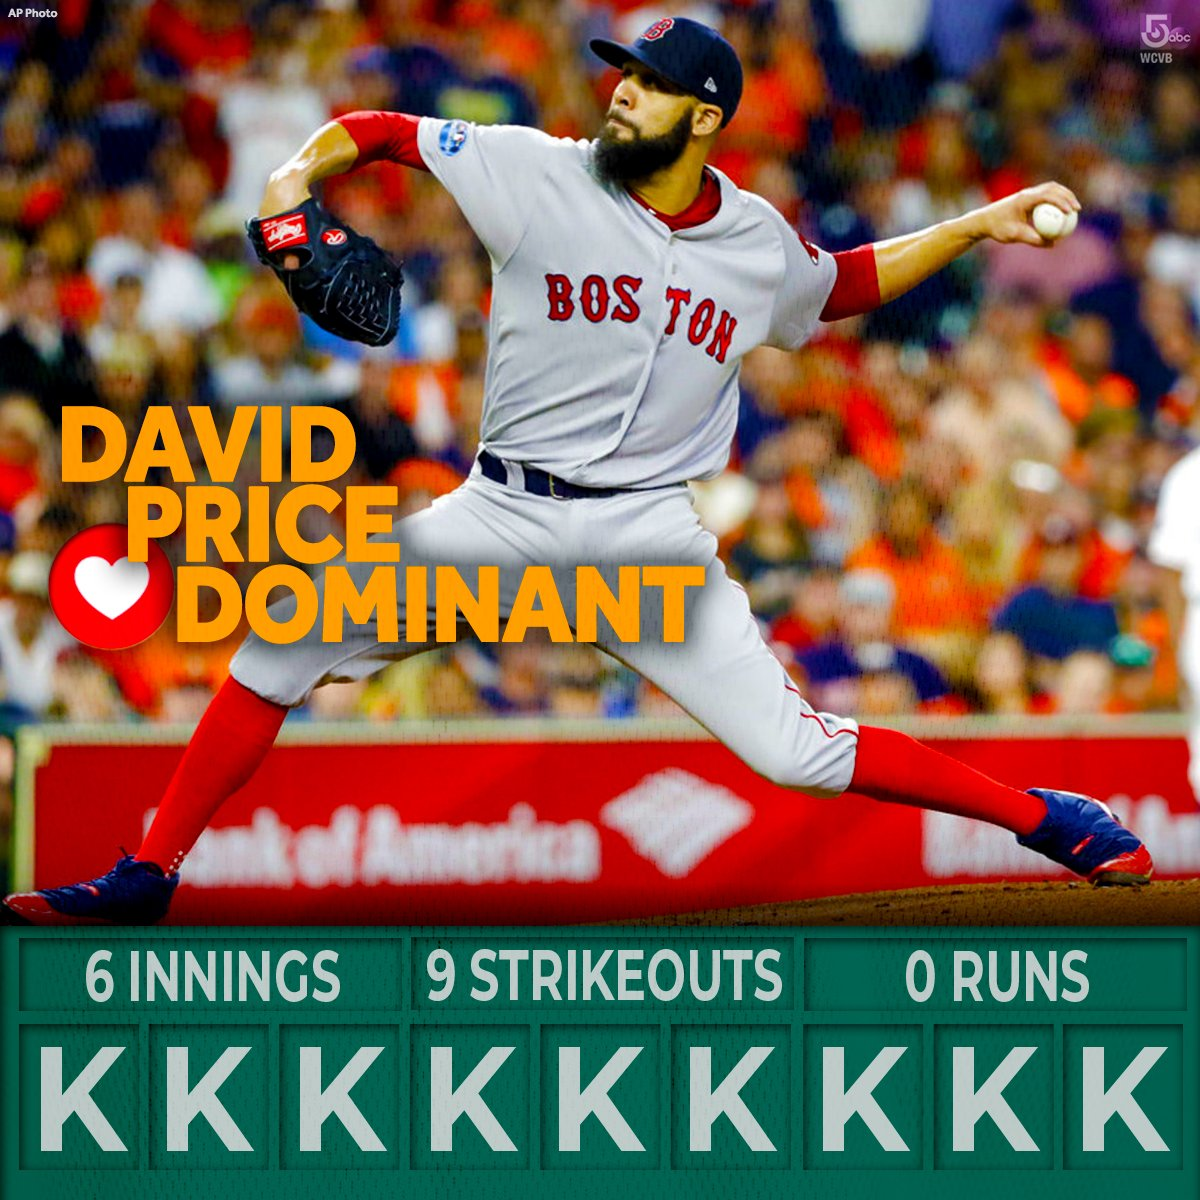 #RedSox SP David Price is done after 6 innings.  From #RedSoxNationNation to David: Thank you for a performance virtually none of us expe#ALCScted!  ❤⚾❤